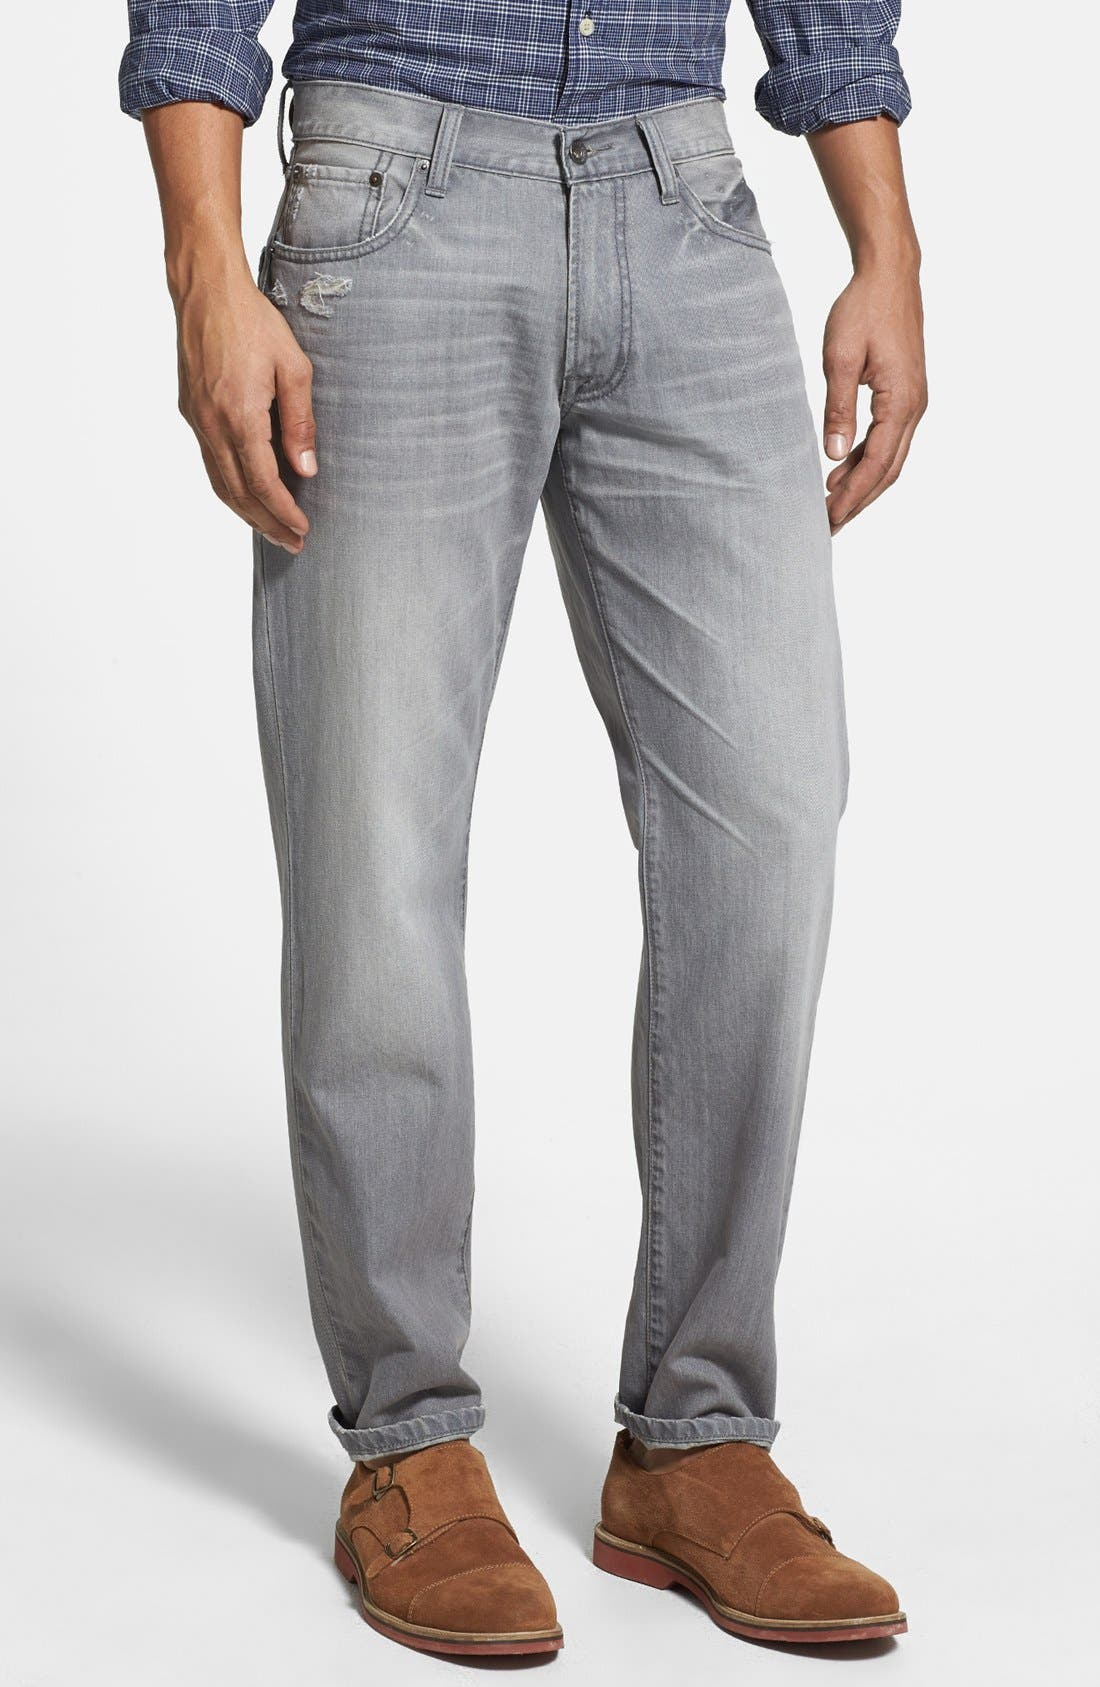 Alternate Image 1 Selected - Lucky Brand '221 Original' Straight Leg Jeans (Sediment)